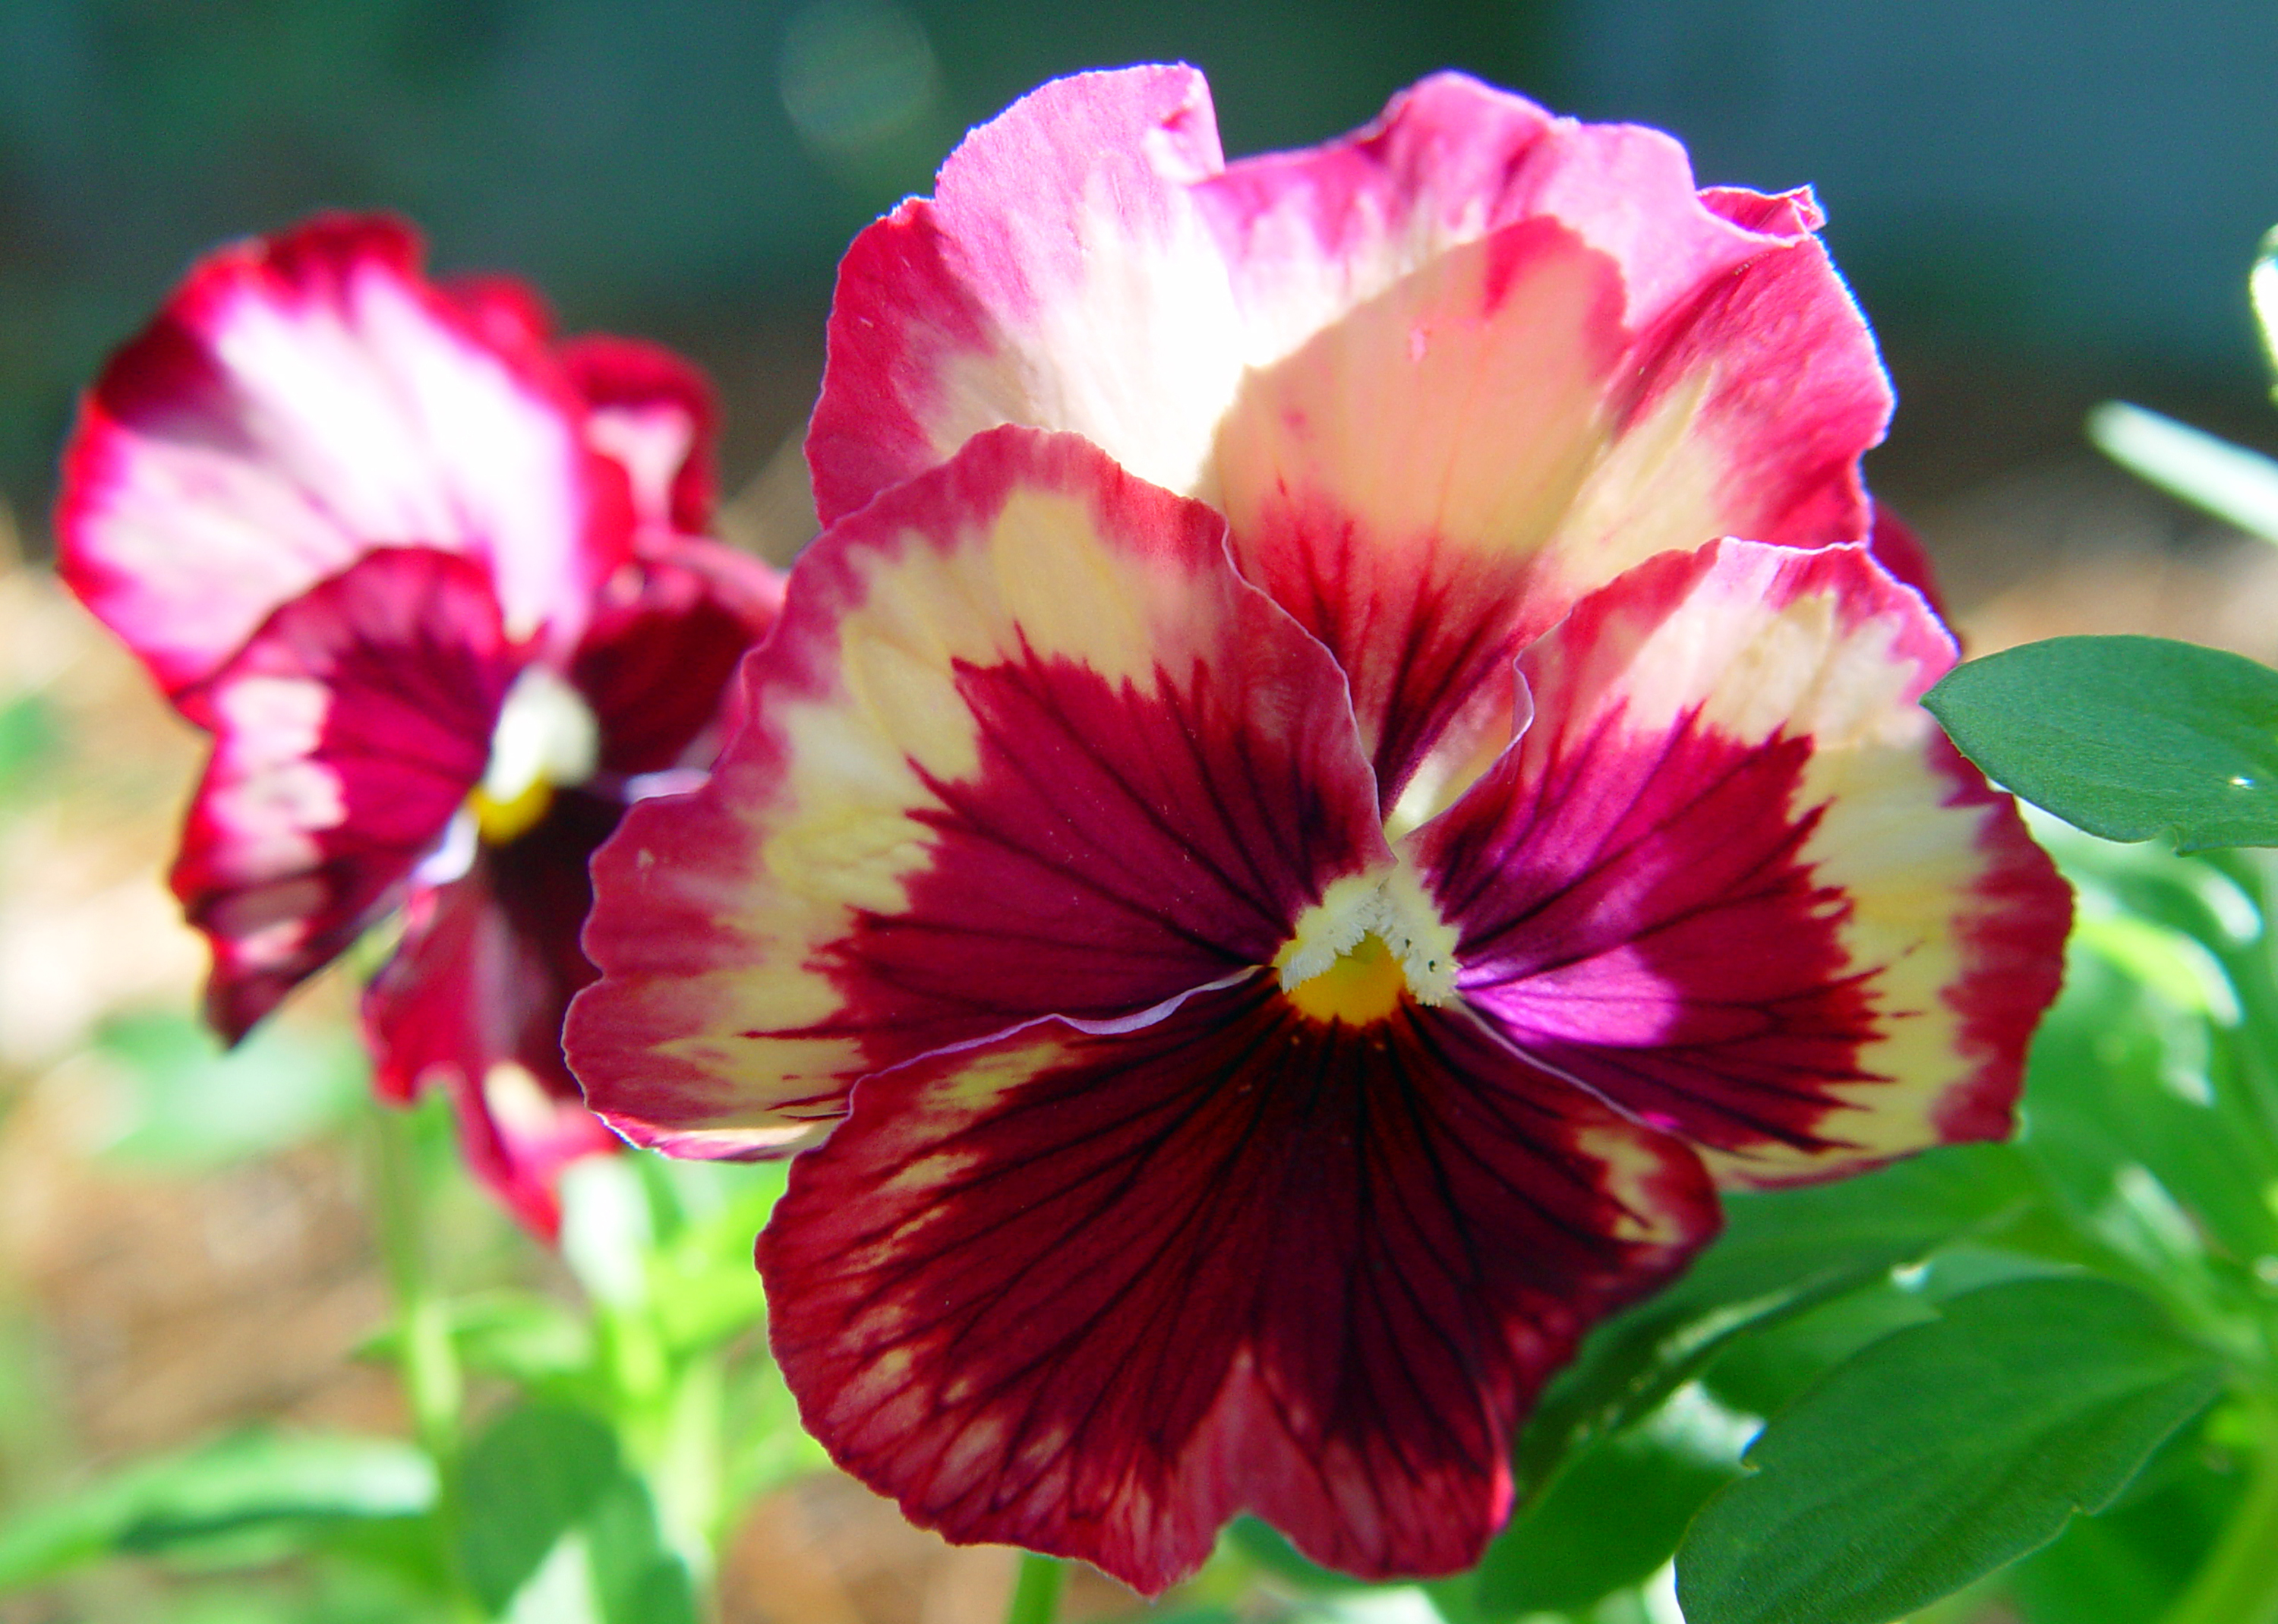 Pansies come in a wide variety of colors - and shades, like this tricolor variety that has two colors along with its face color.